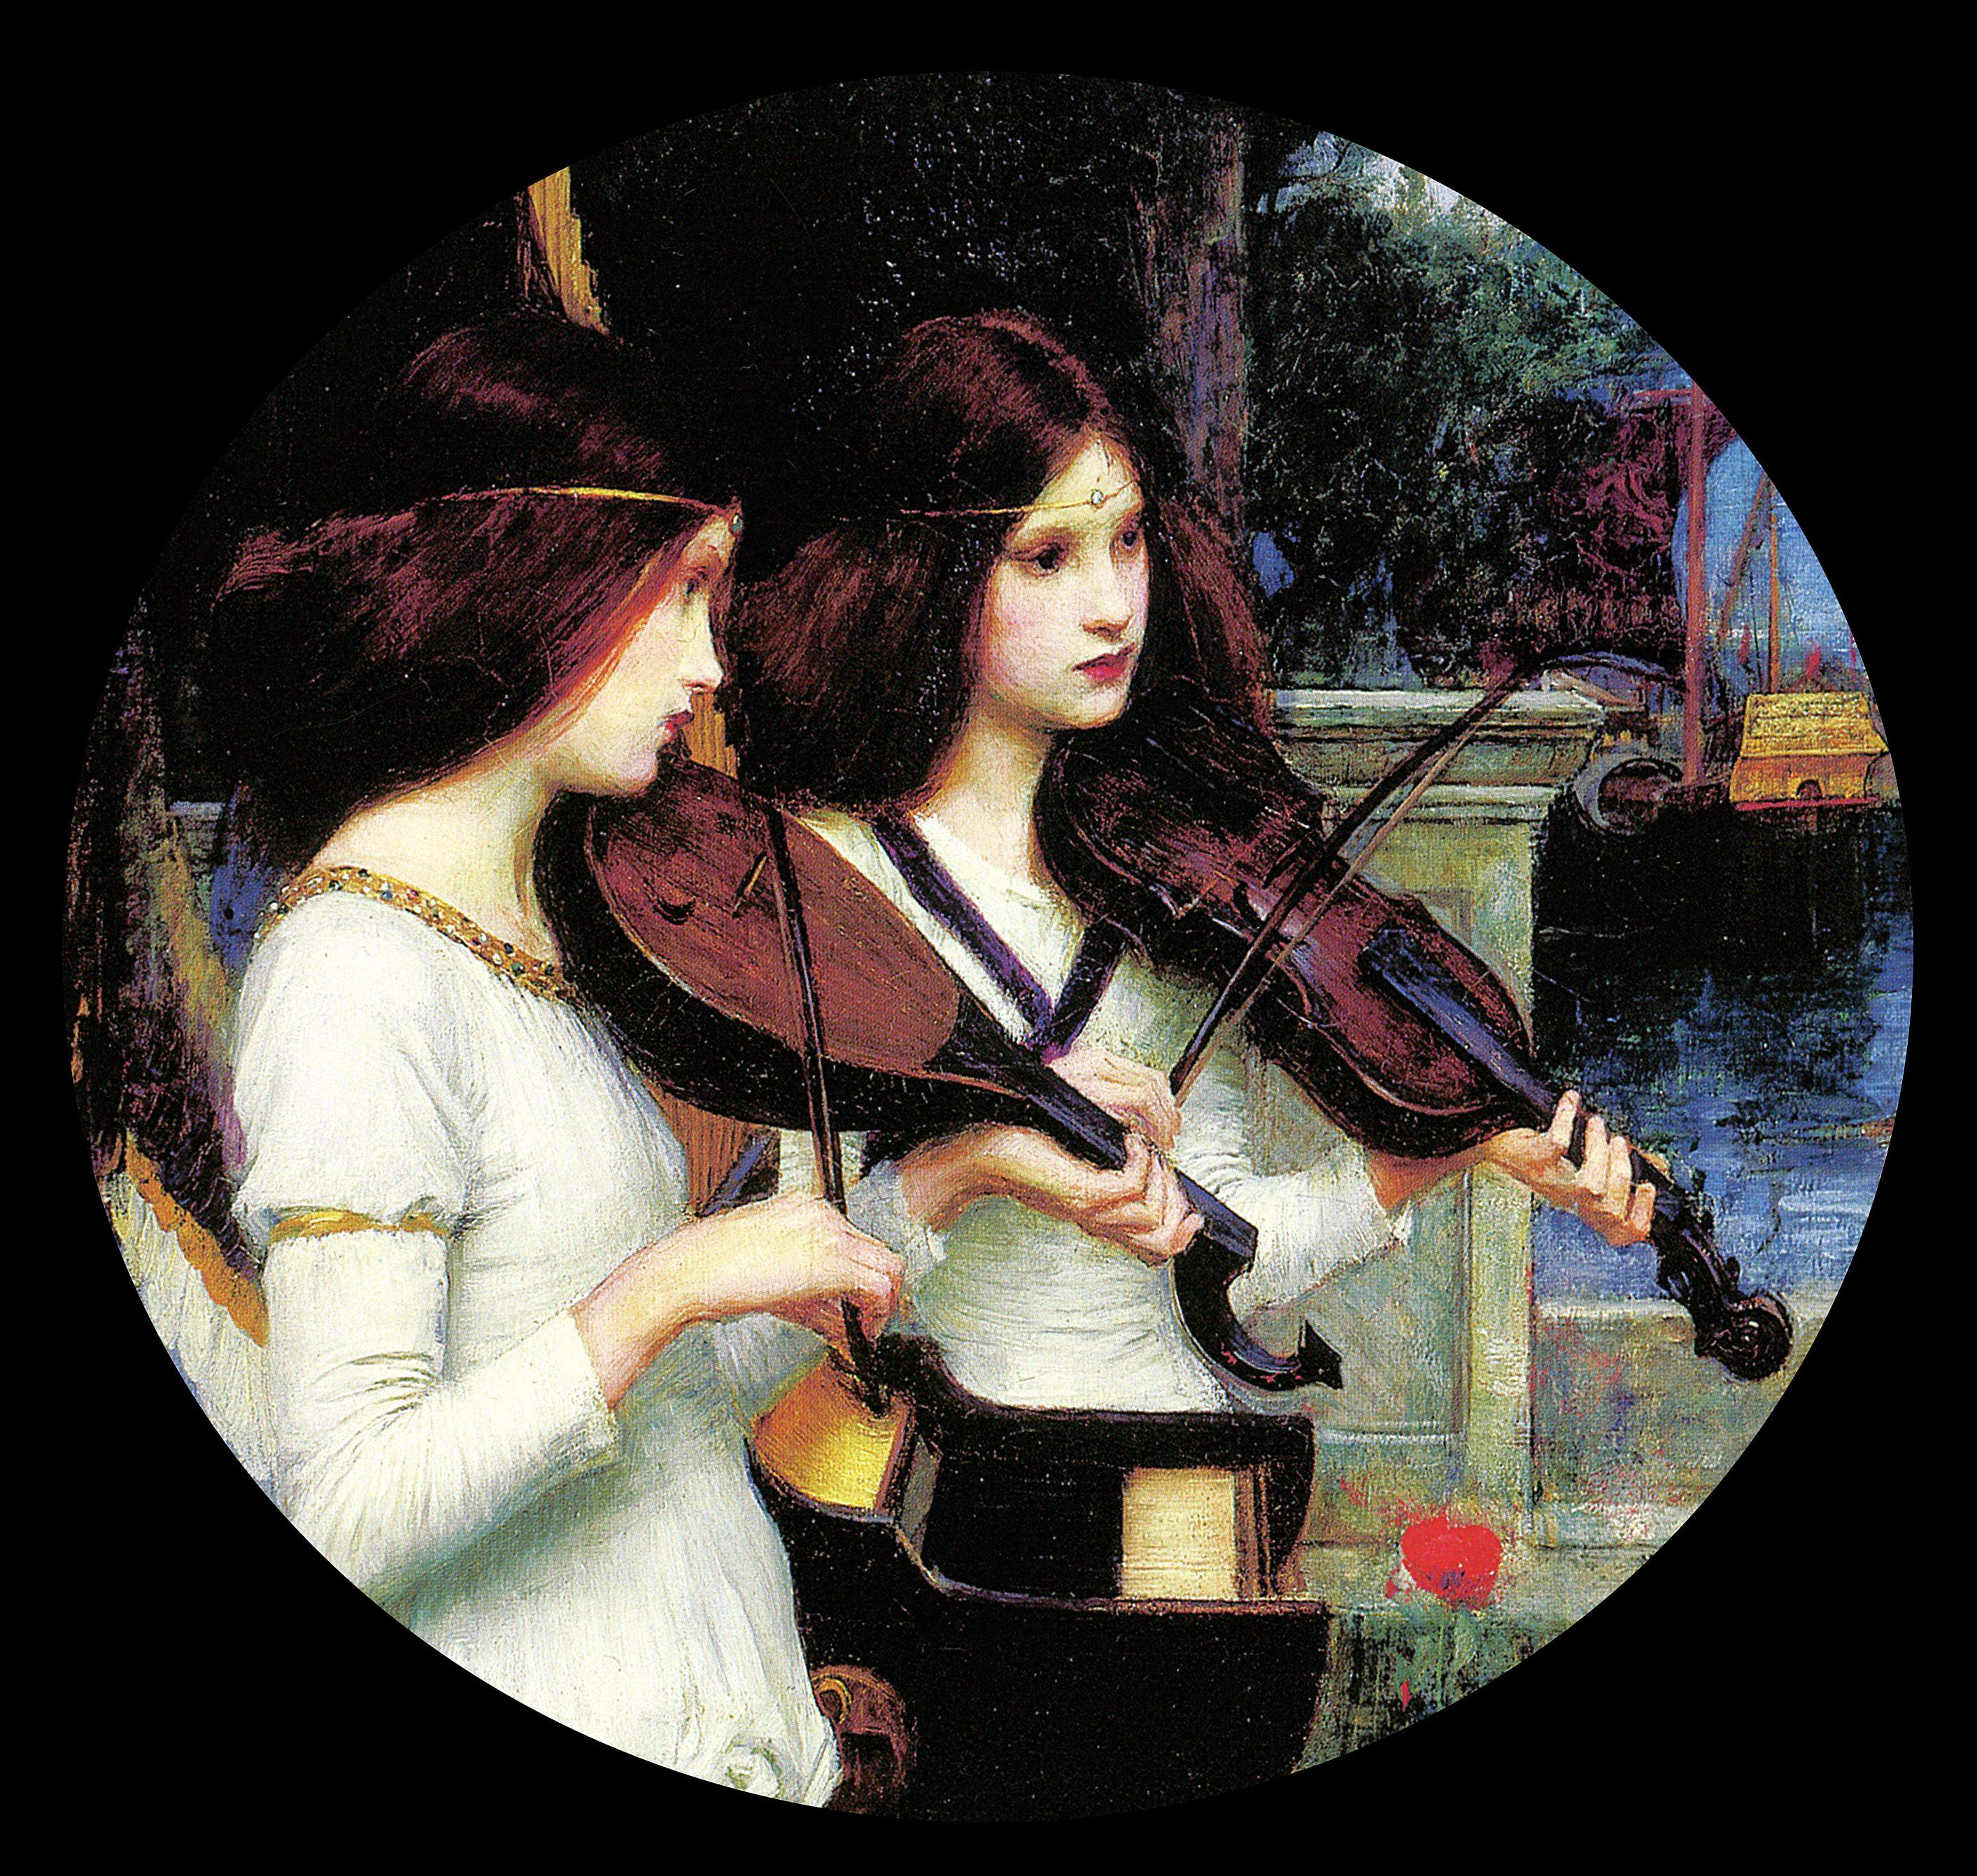 J.W. Waterhouse, Sainte Cécile, détail - Copie